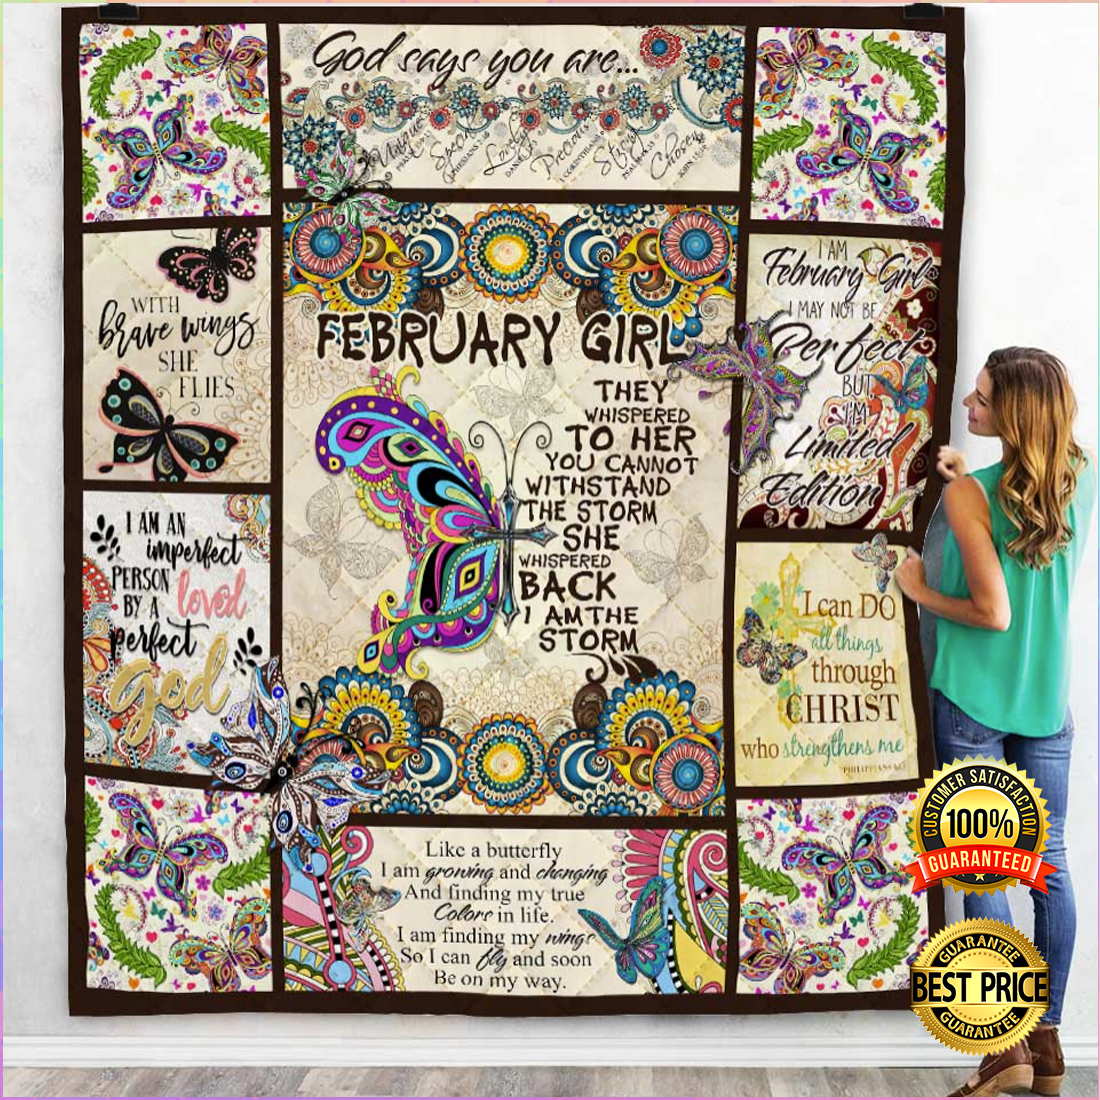 February girl they whispered to her you cannot withstand the storm quilt 5